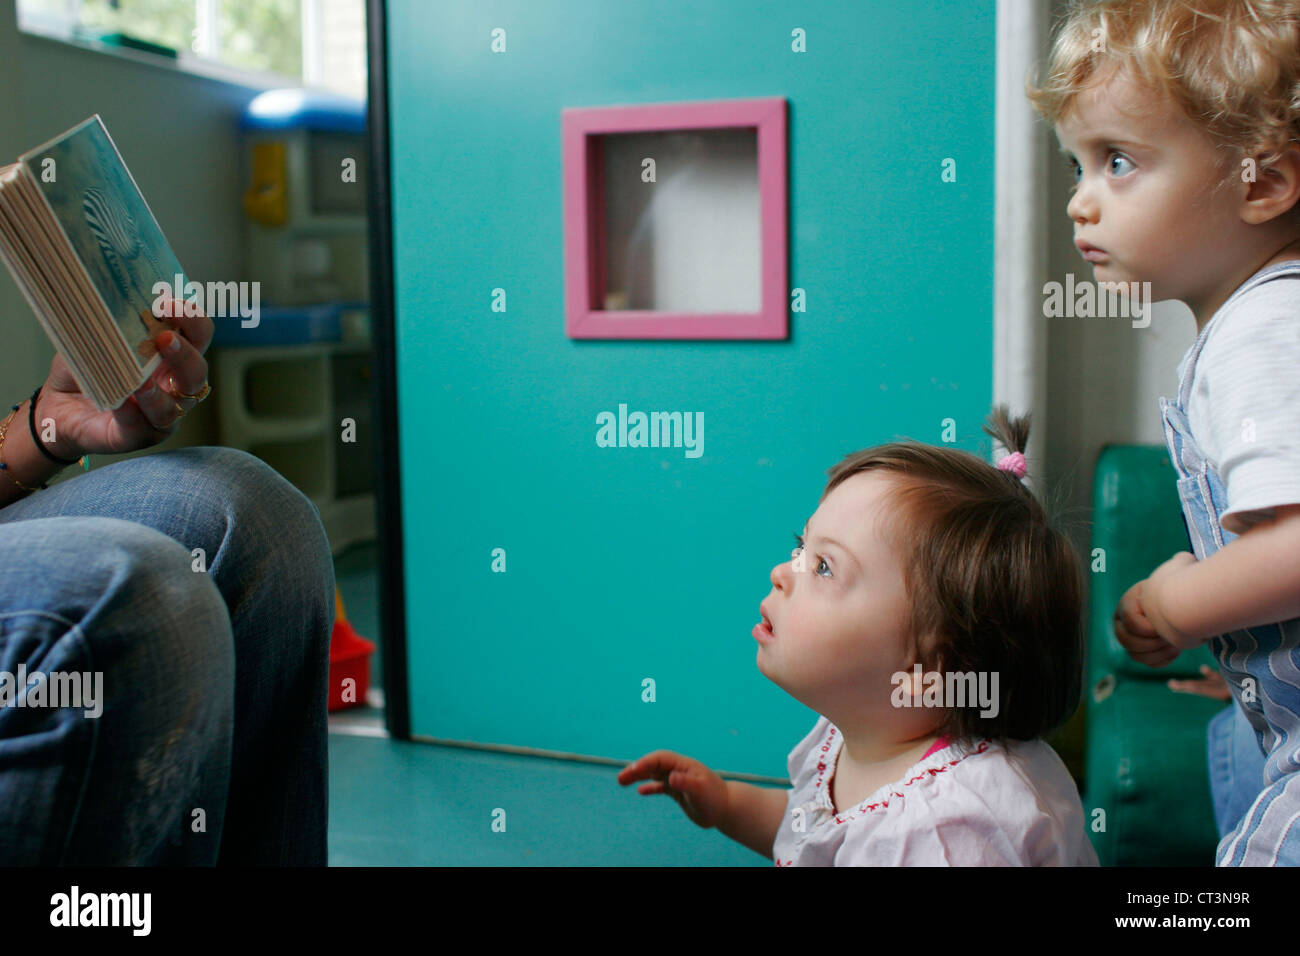 CHILD, DOWN'S SYNDROME NURSERY - Stock Image